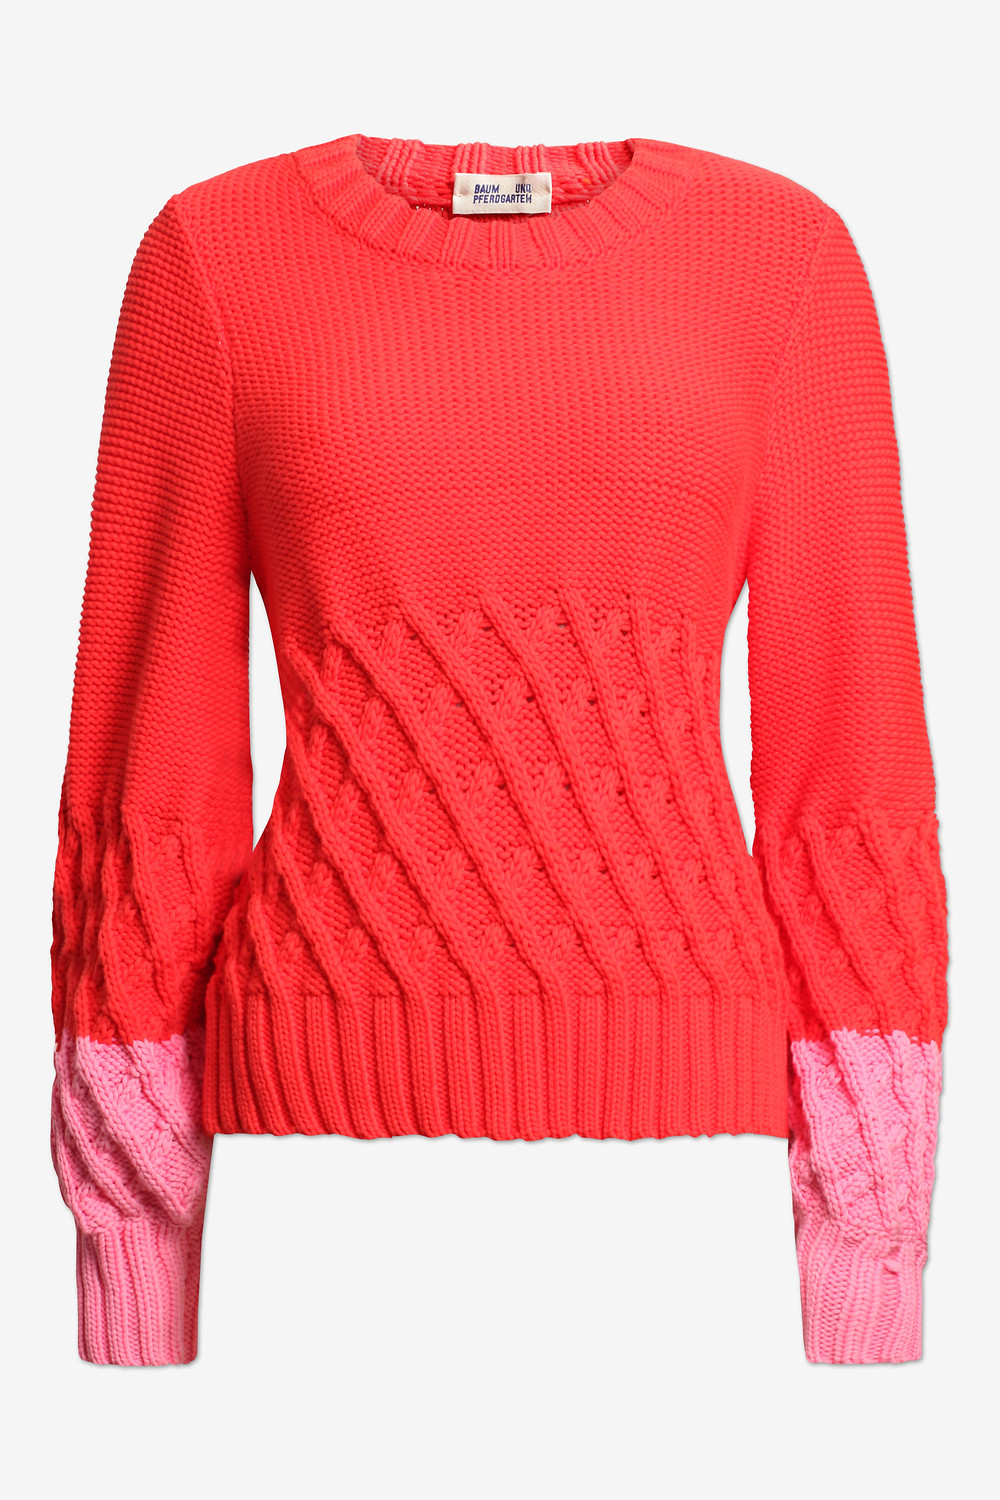 Cotton knits are so useful for the British summer time, perfect with turned up jeans or layered over dresses , you'll rock the fresh summer vibe!